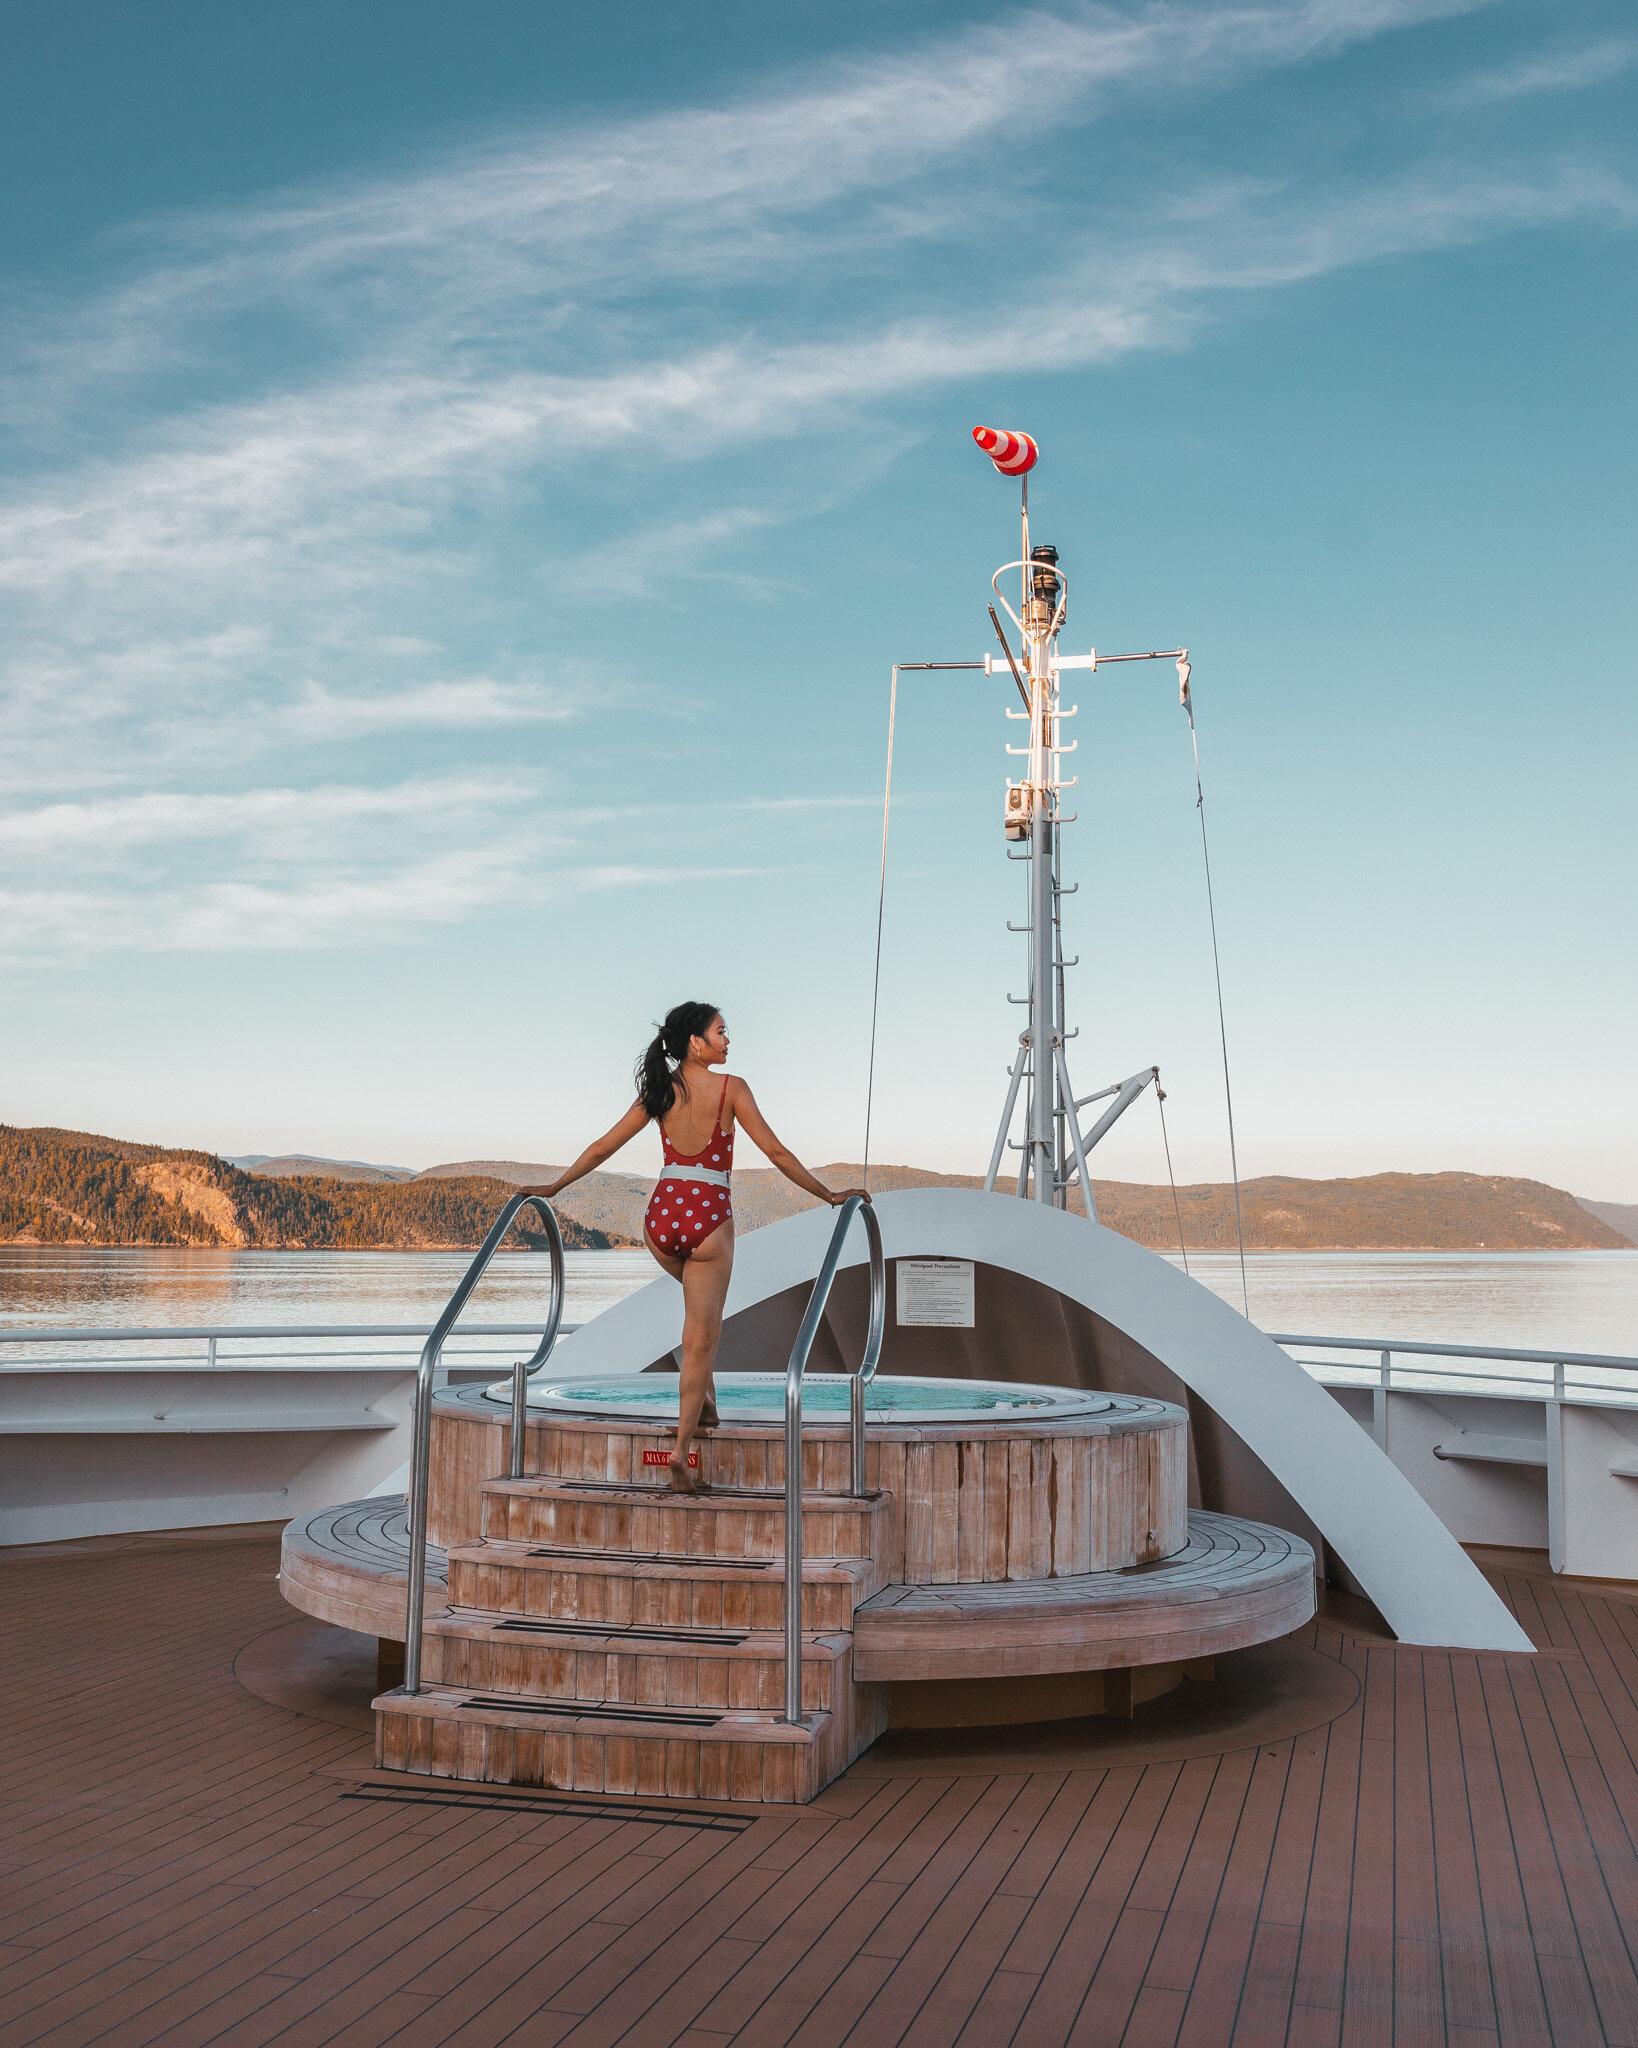 Bow of the Seabourn Quest whirlpool // Cruise Review: 11-Day New England & Canada on the Seabourn Quest // #readysetjetset #canada #cruise #luxury #travel #cruising